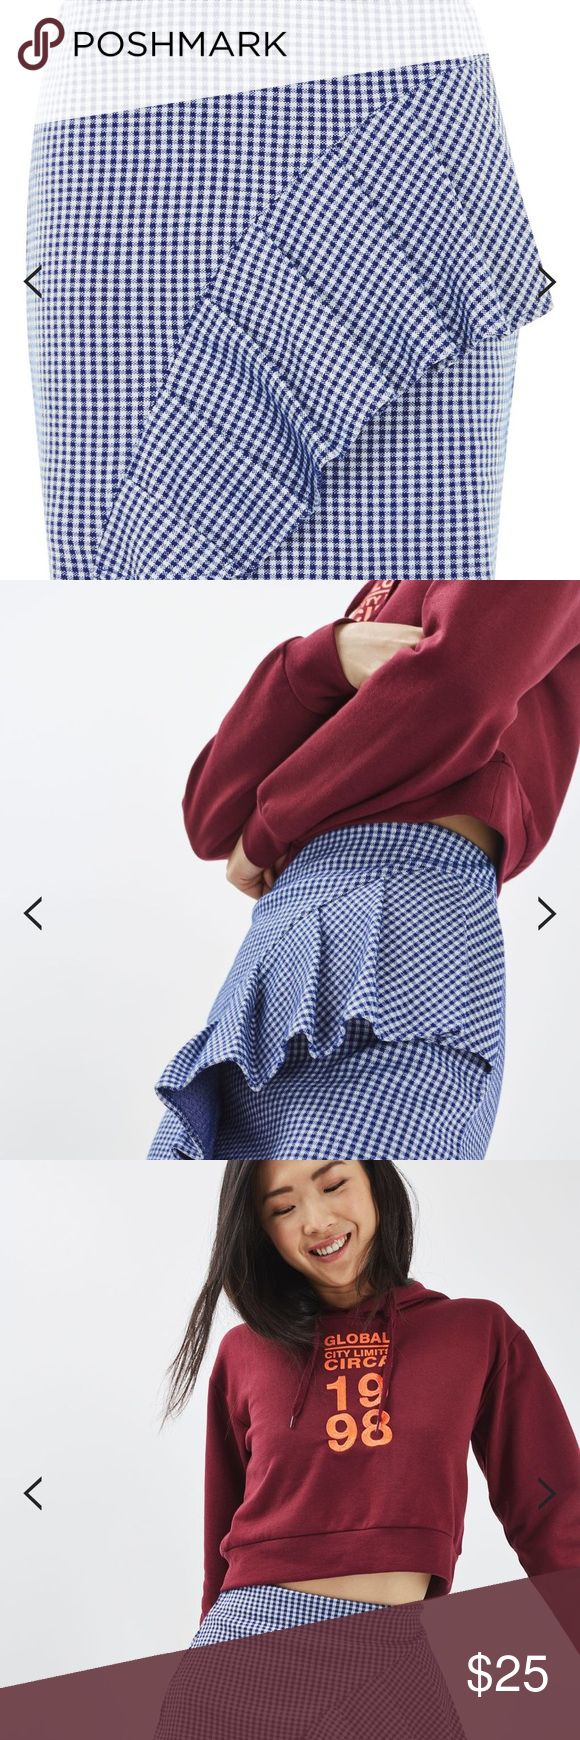 Top shop Gingham Ruffle Jersey Mini Skirt NWT Ruffles and gingham: the two super-trends we cant get enough of. Wear them combined in this statement mini skirt. We love how the ruffle detail travels from the side seam for a girlie touch. Mix it up with a graphic hoodie to finish the look. 51% Polyester, 49% Cotton. Machine wash. Navy blue and white color Topshop Skirts Mini